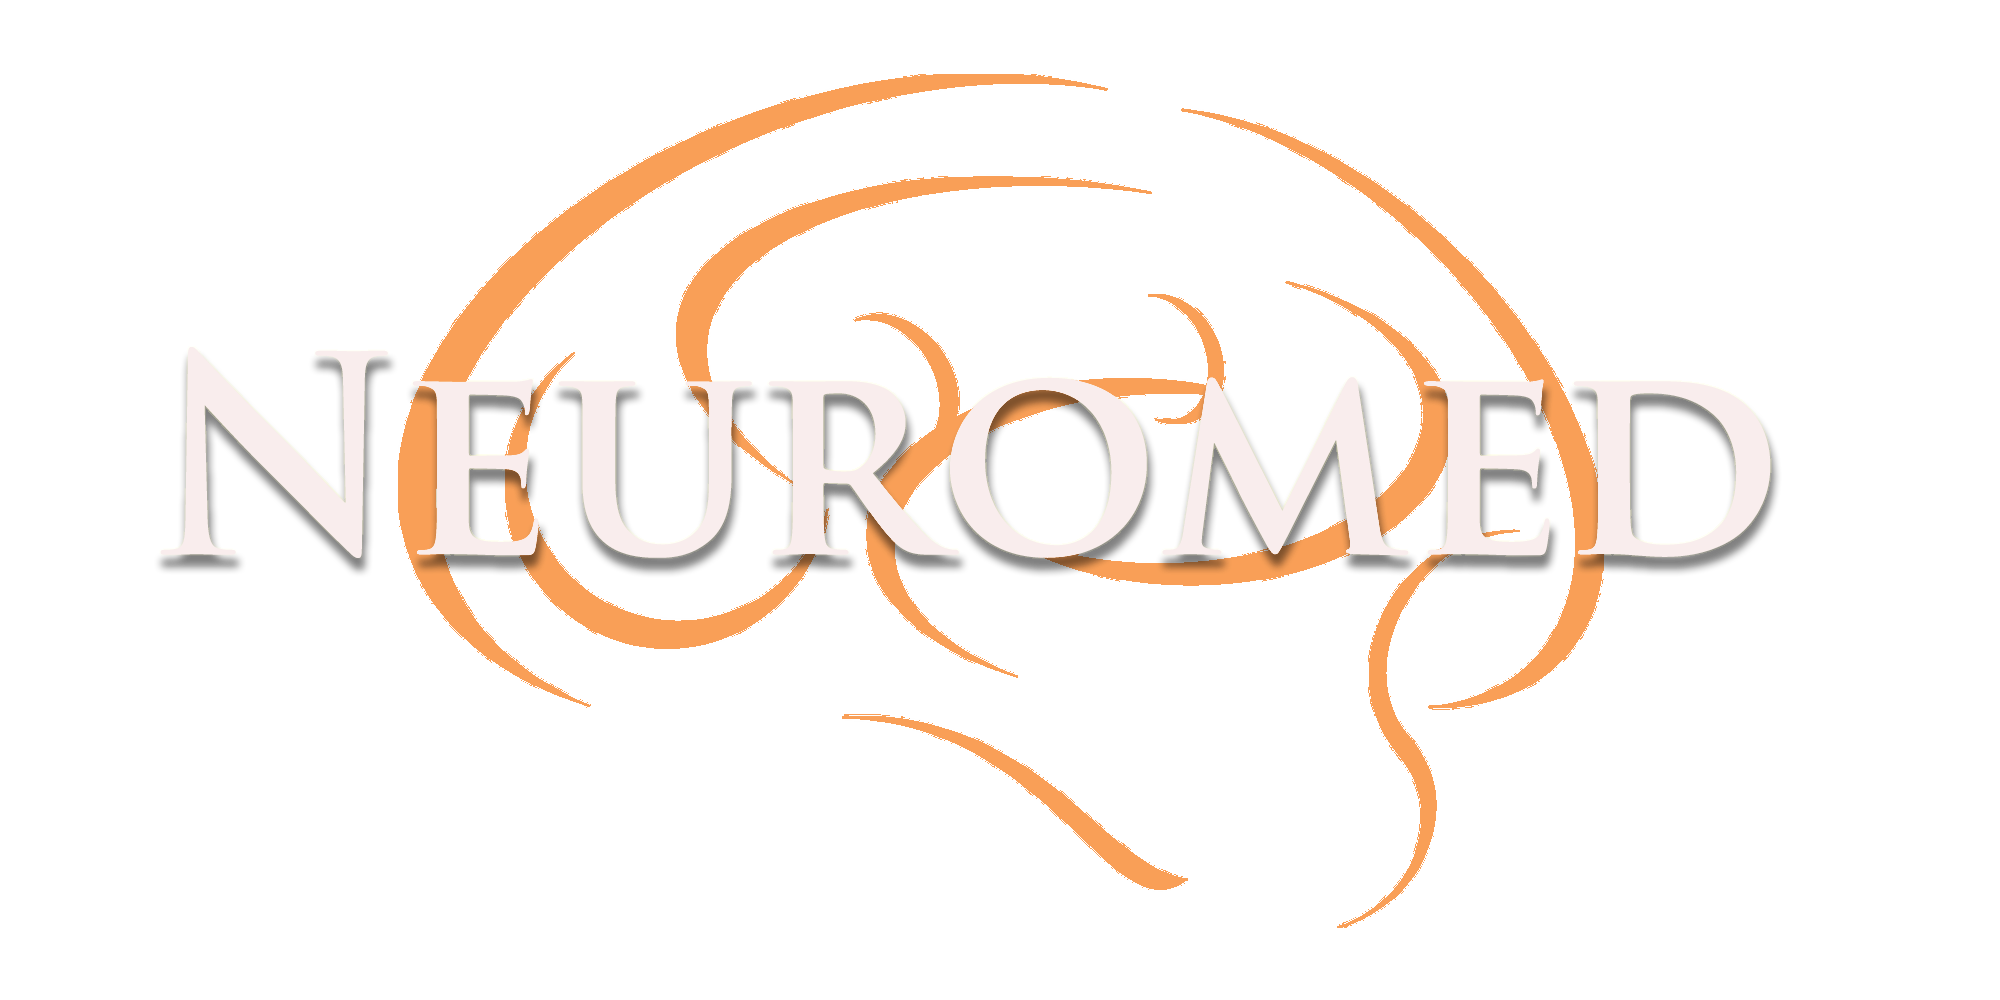 Neuromed logo